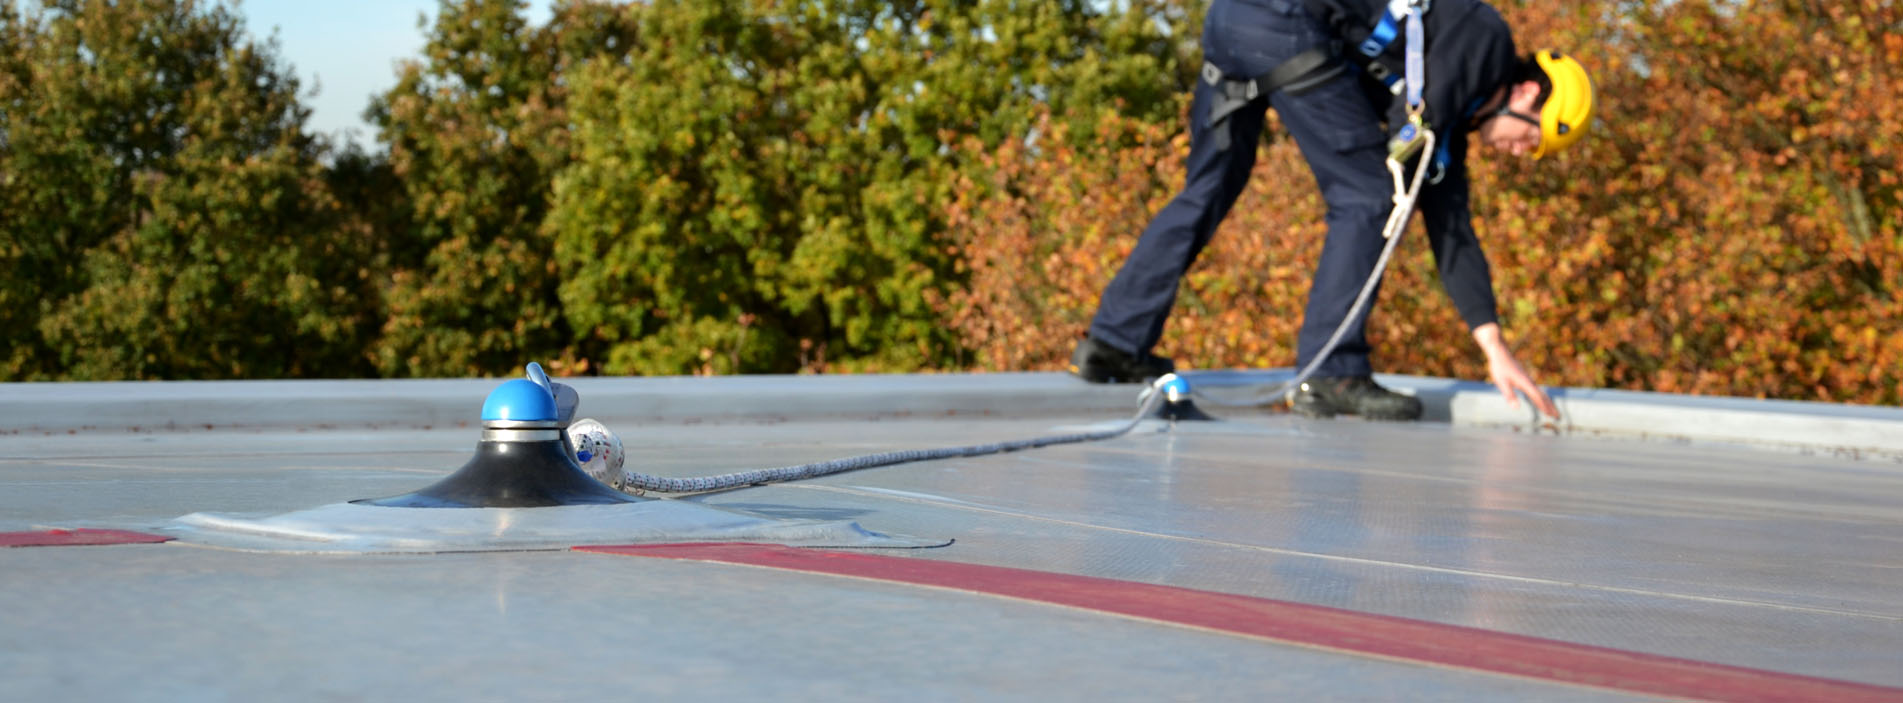 anchor point senior singles For over 10 years, guardian fall protection has offered more anchor point solutions than any other company in the world.